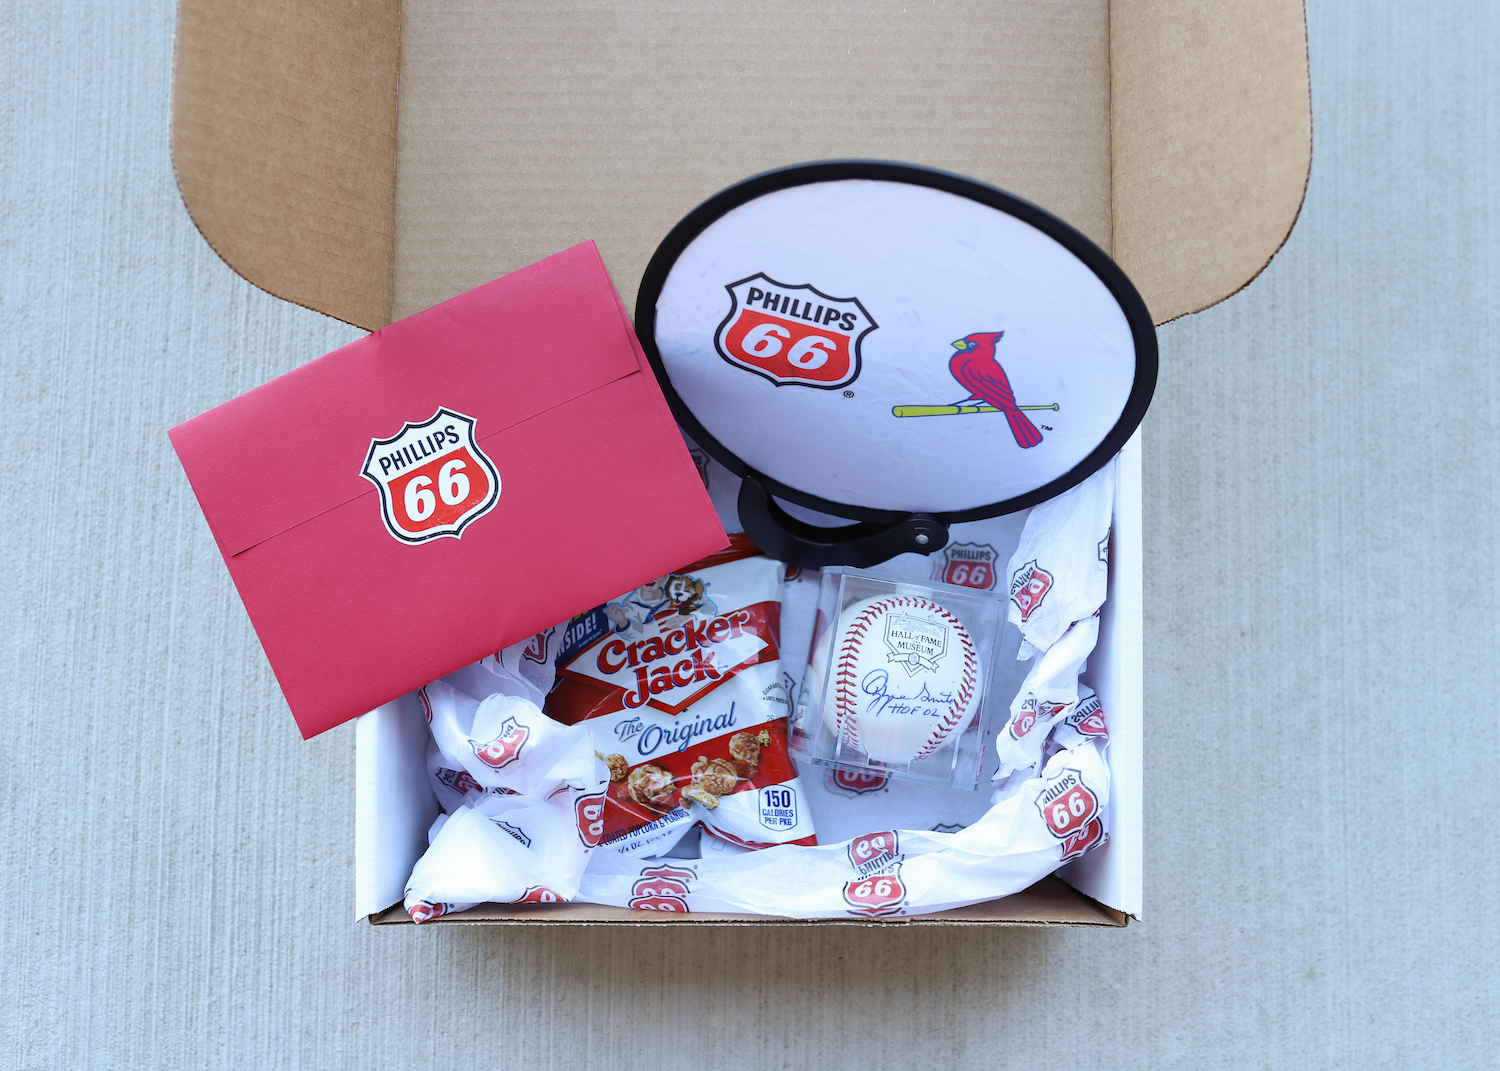 Phillips 66 Home Run Kit - St. Louis Cardinals